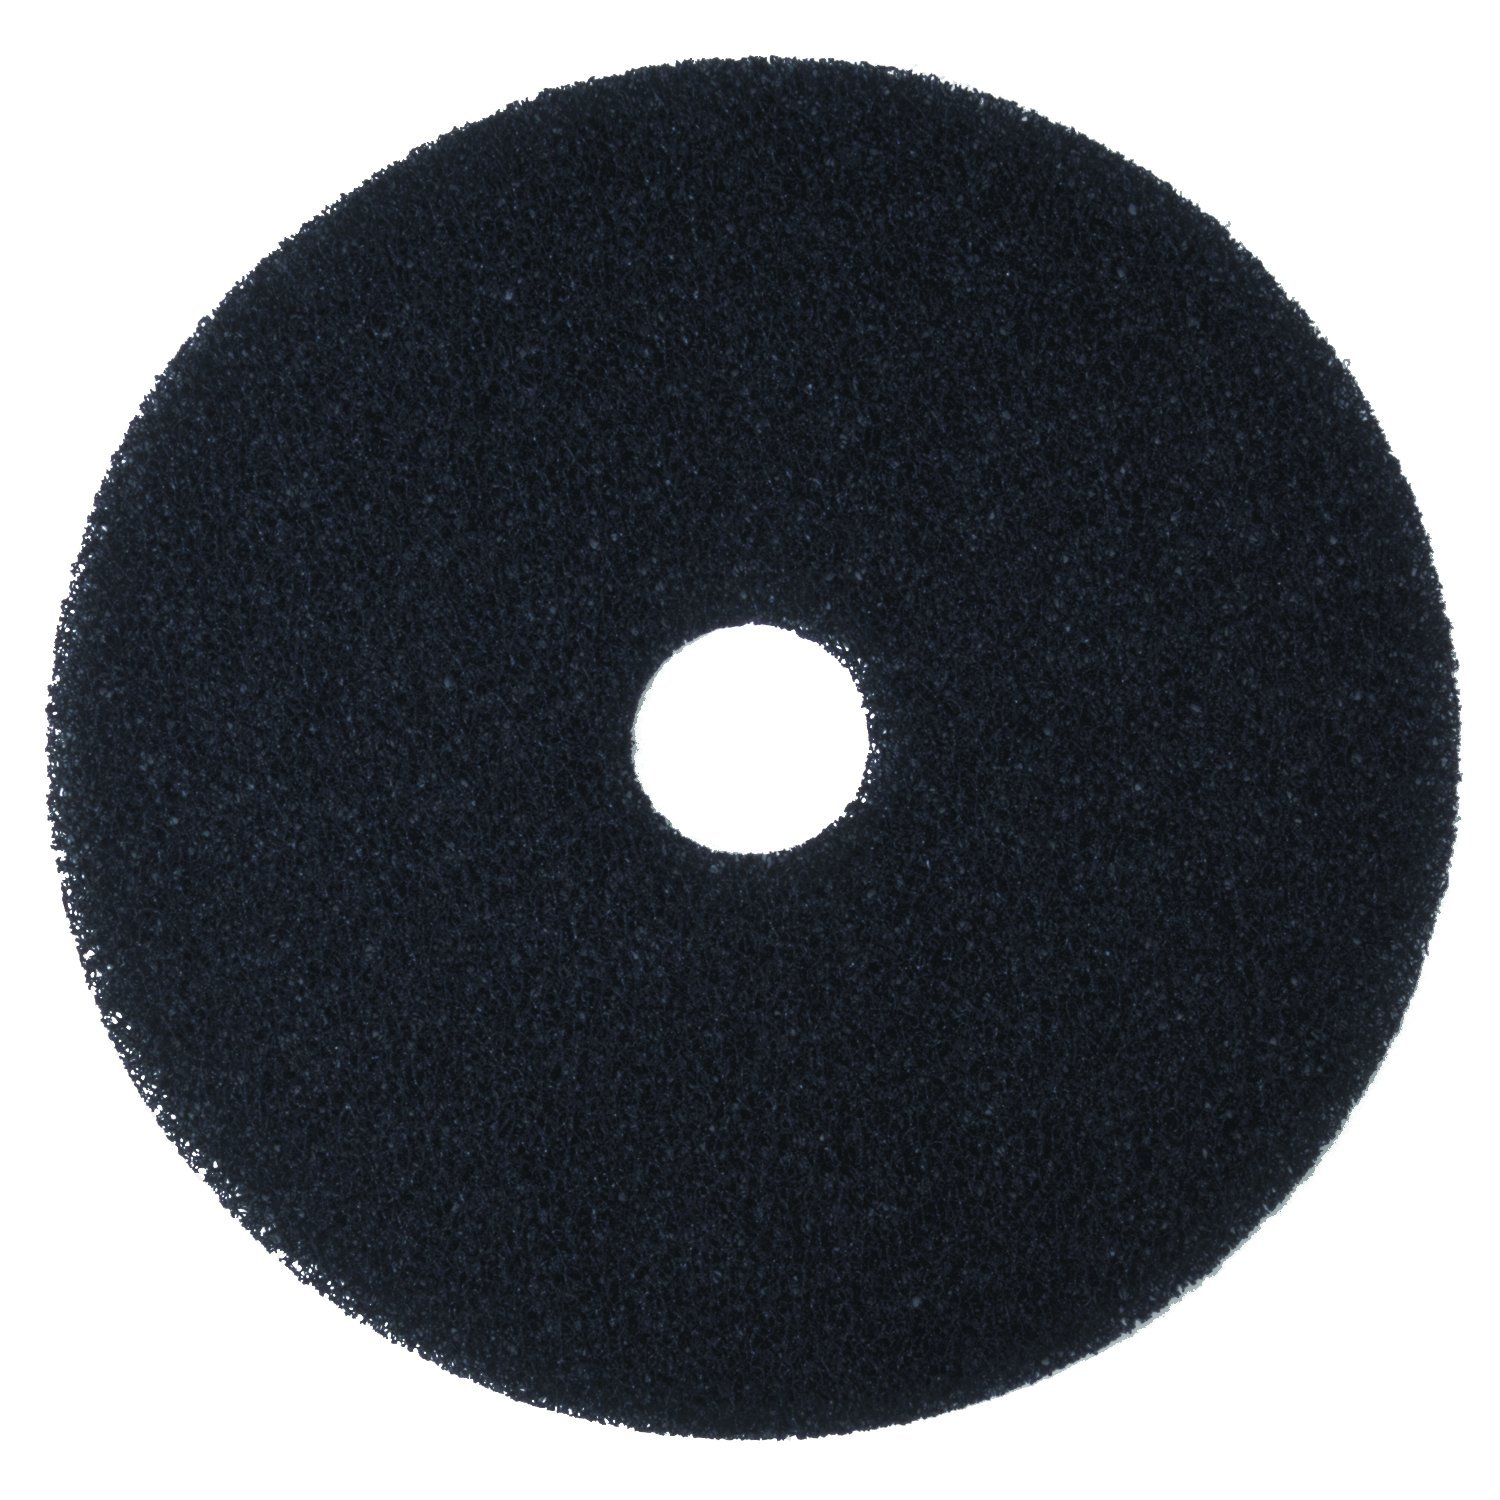 3M Black Stripper Pad 7200, 20'' Floor Care Pad (Case of 5) by 3M